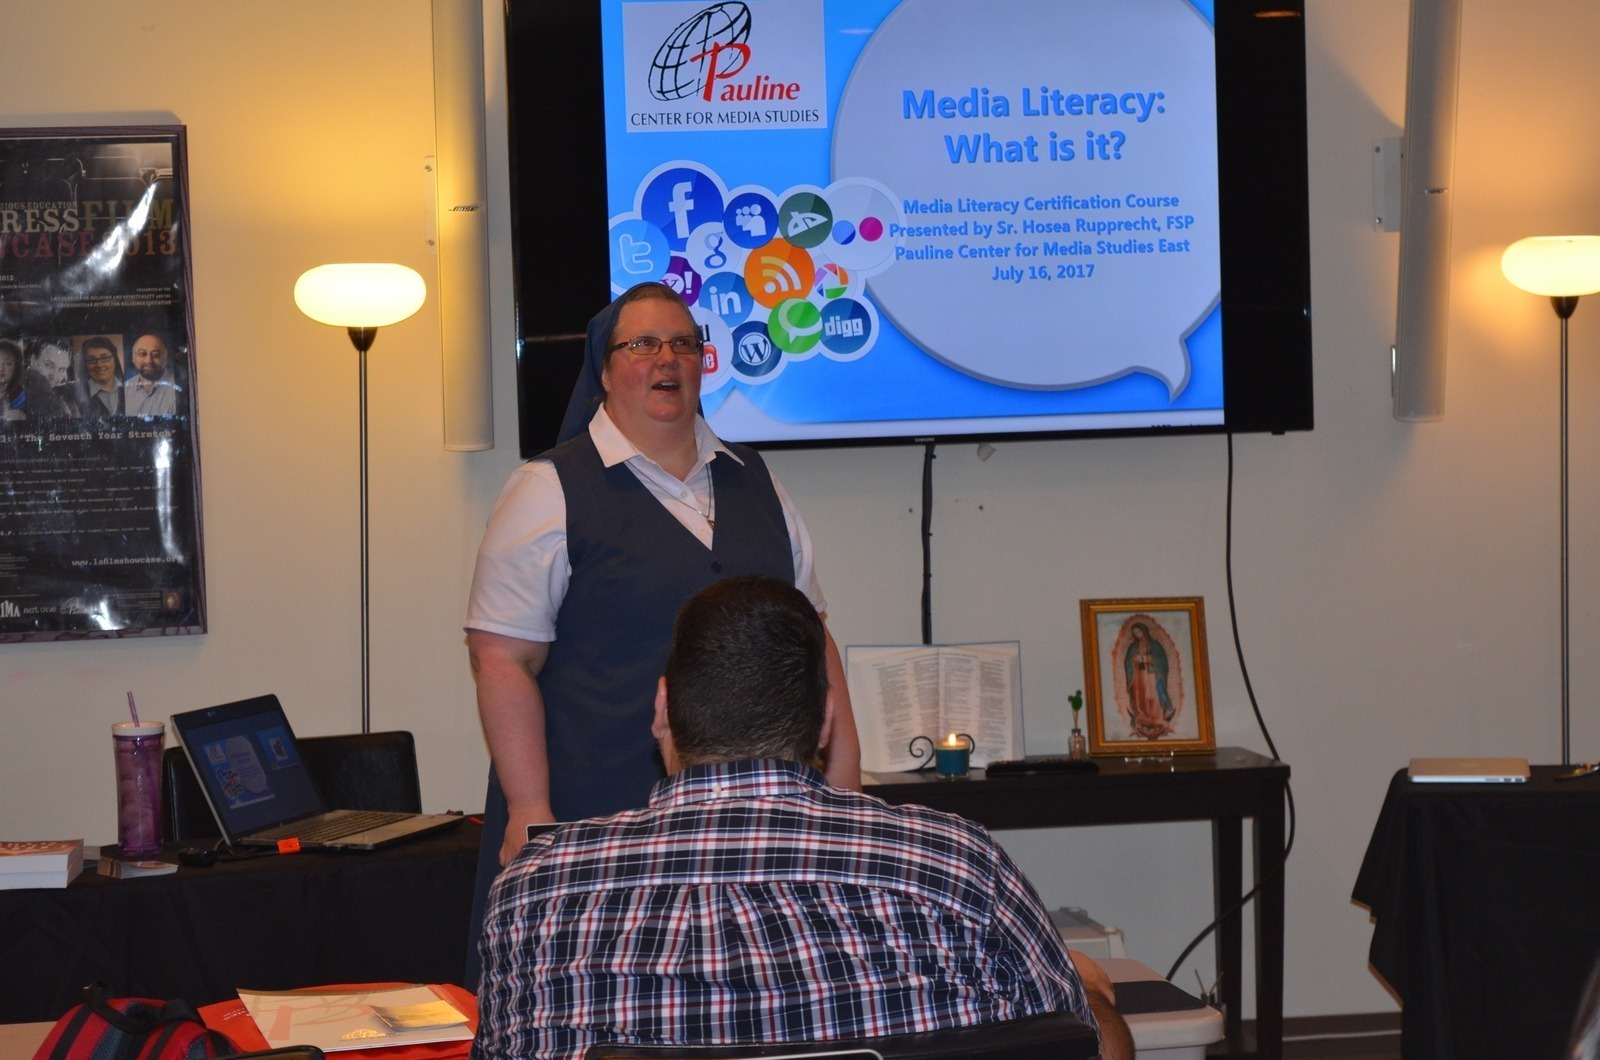 Sr. Hosea teaching at the 2017 Media Literacy Course